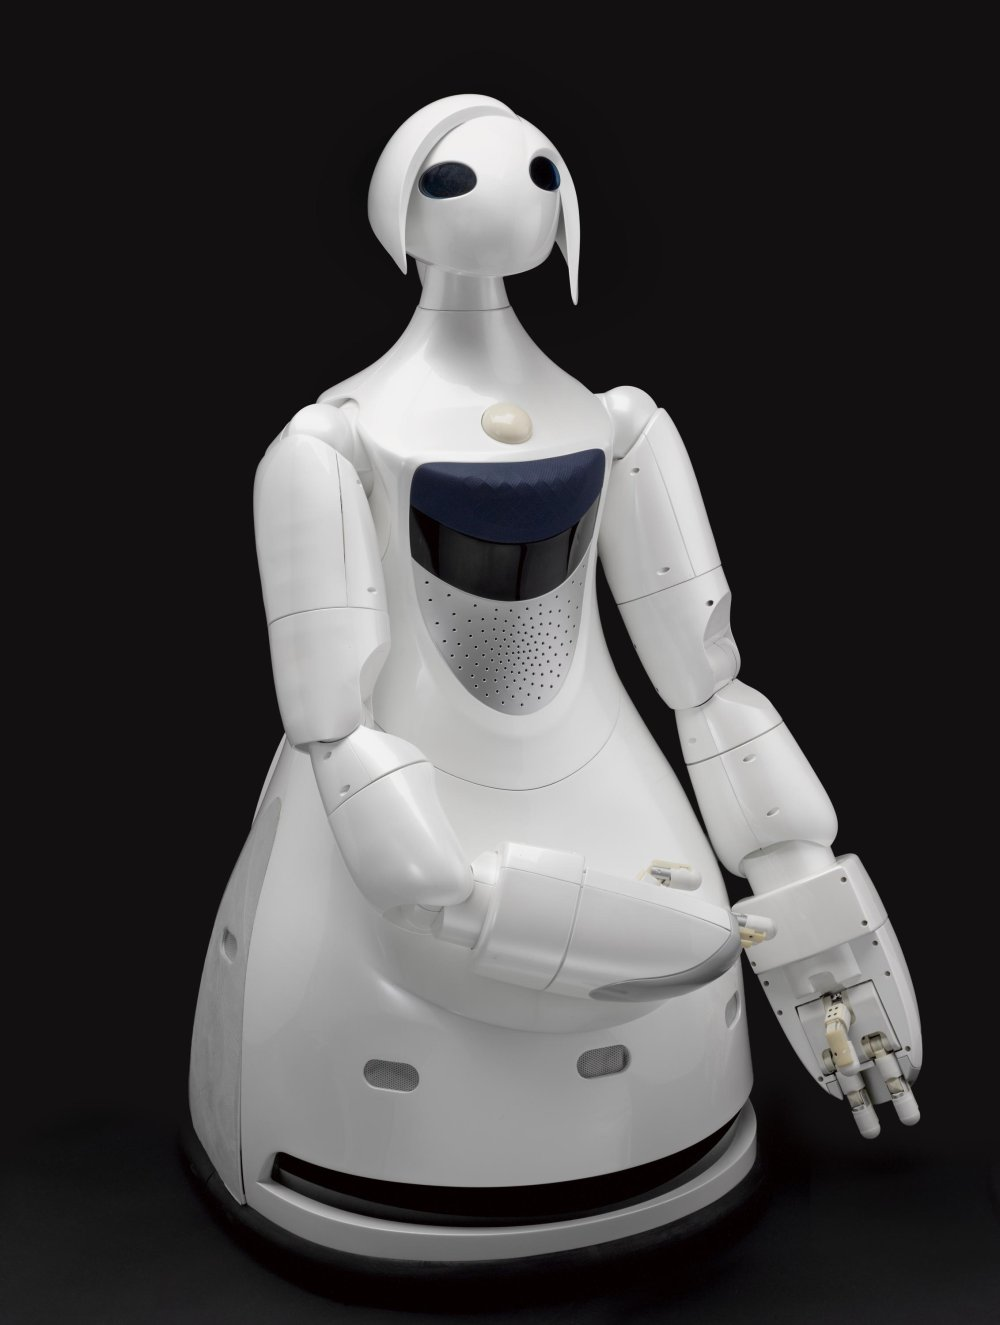 Robina Partner Robot created by Toyota Motor Co., Japan, c.2007